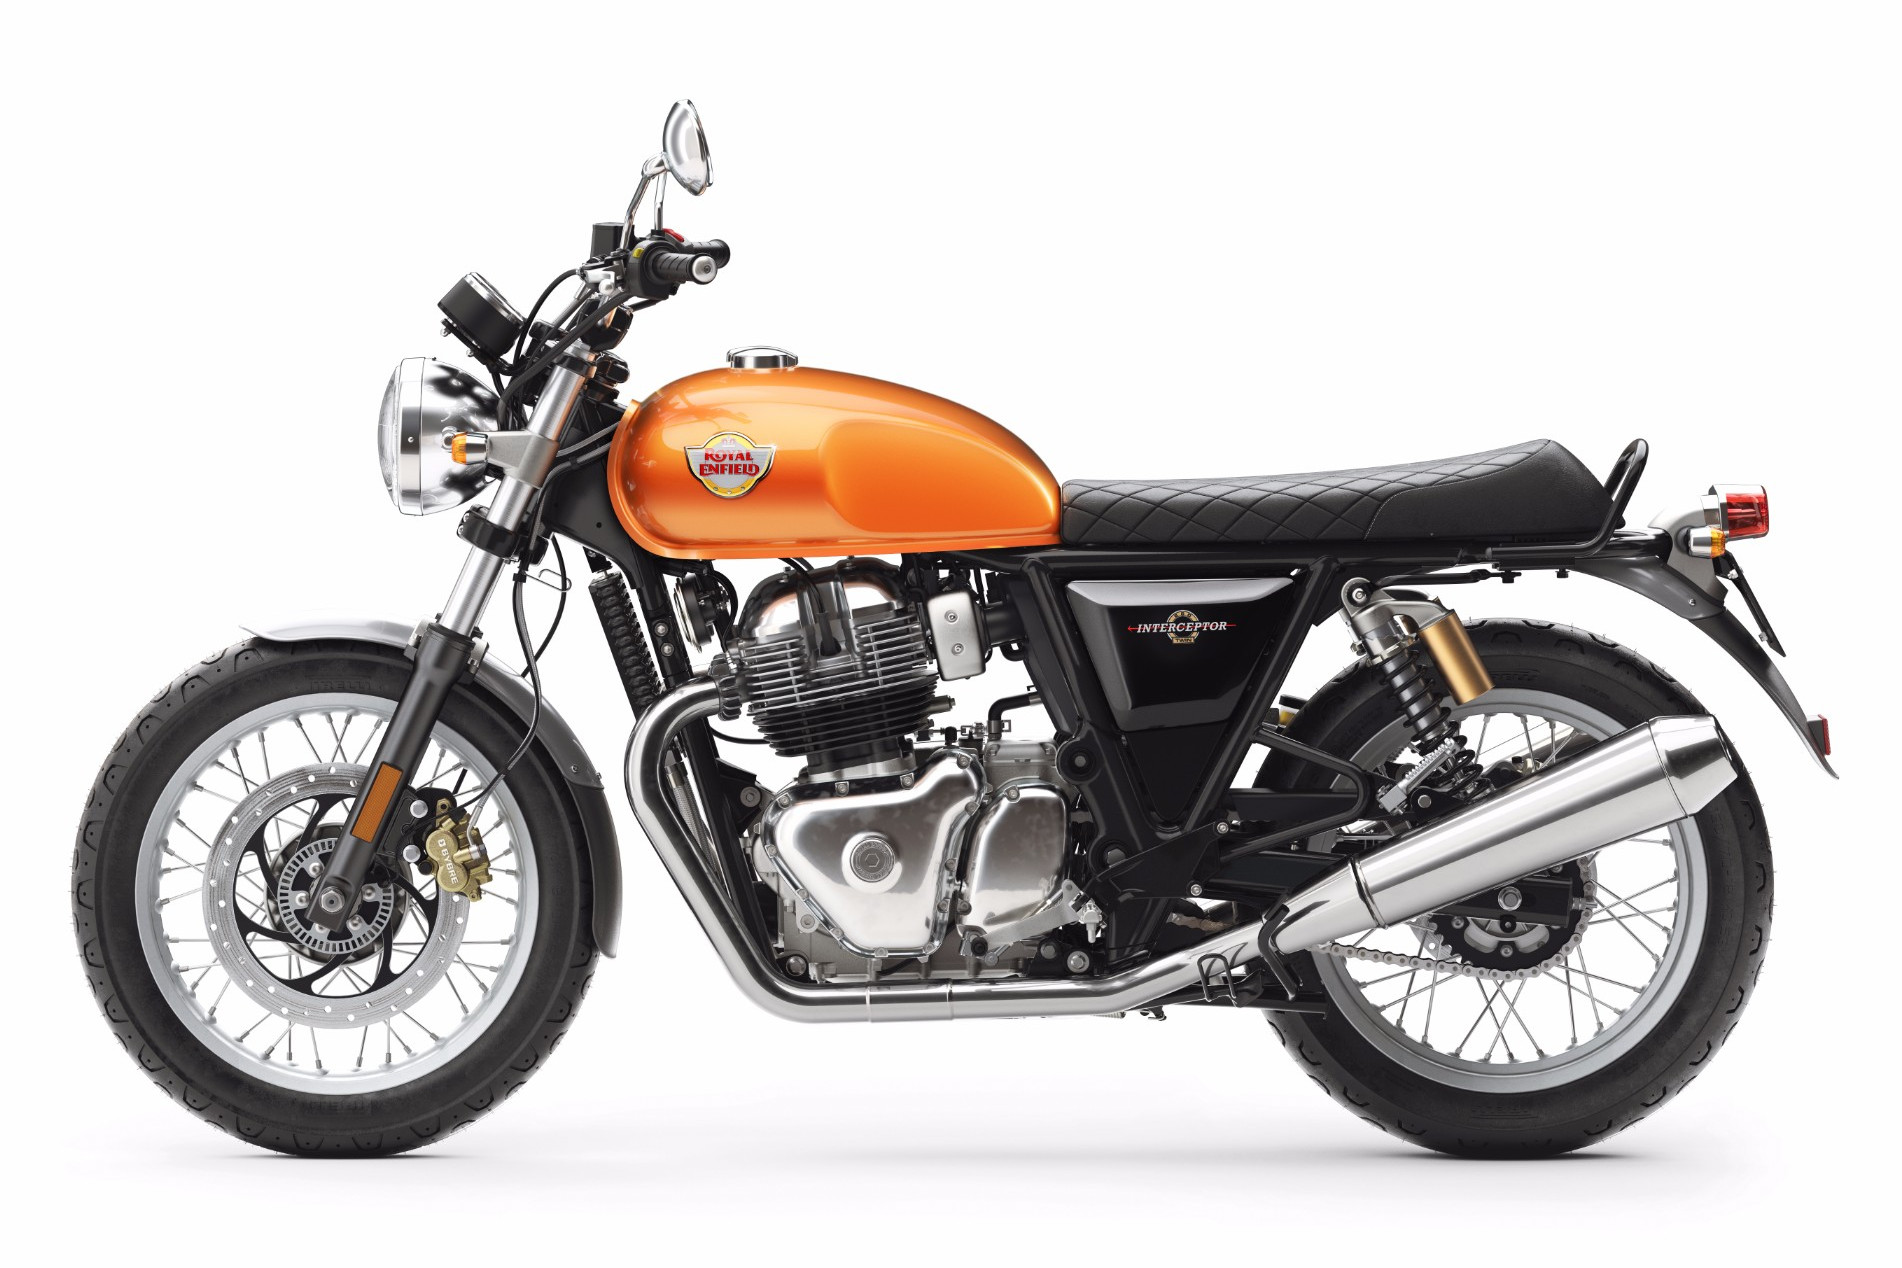 Royal Enfield Interceptor 650 2018